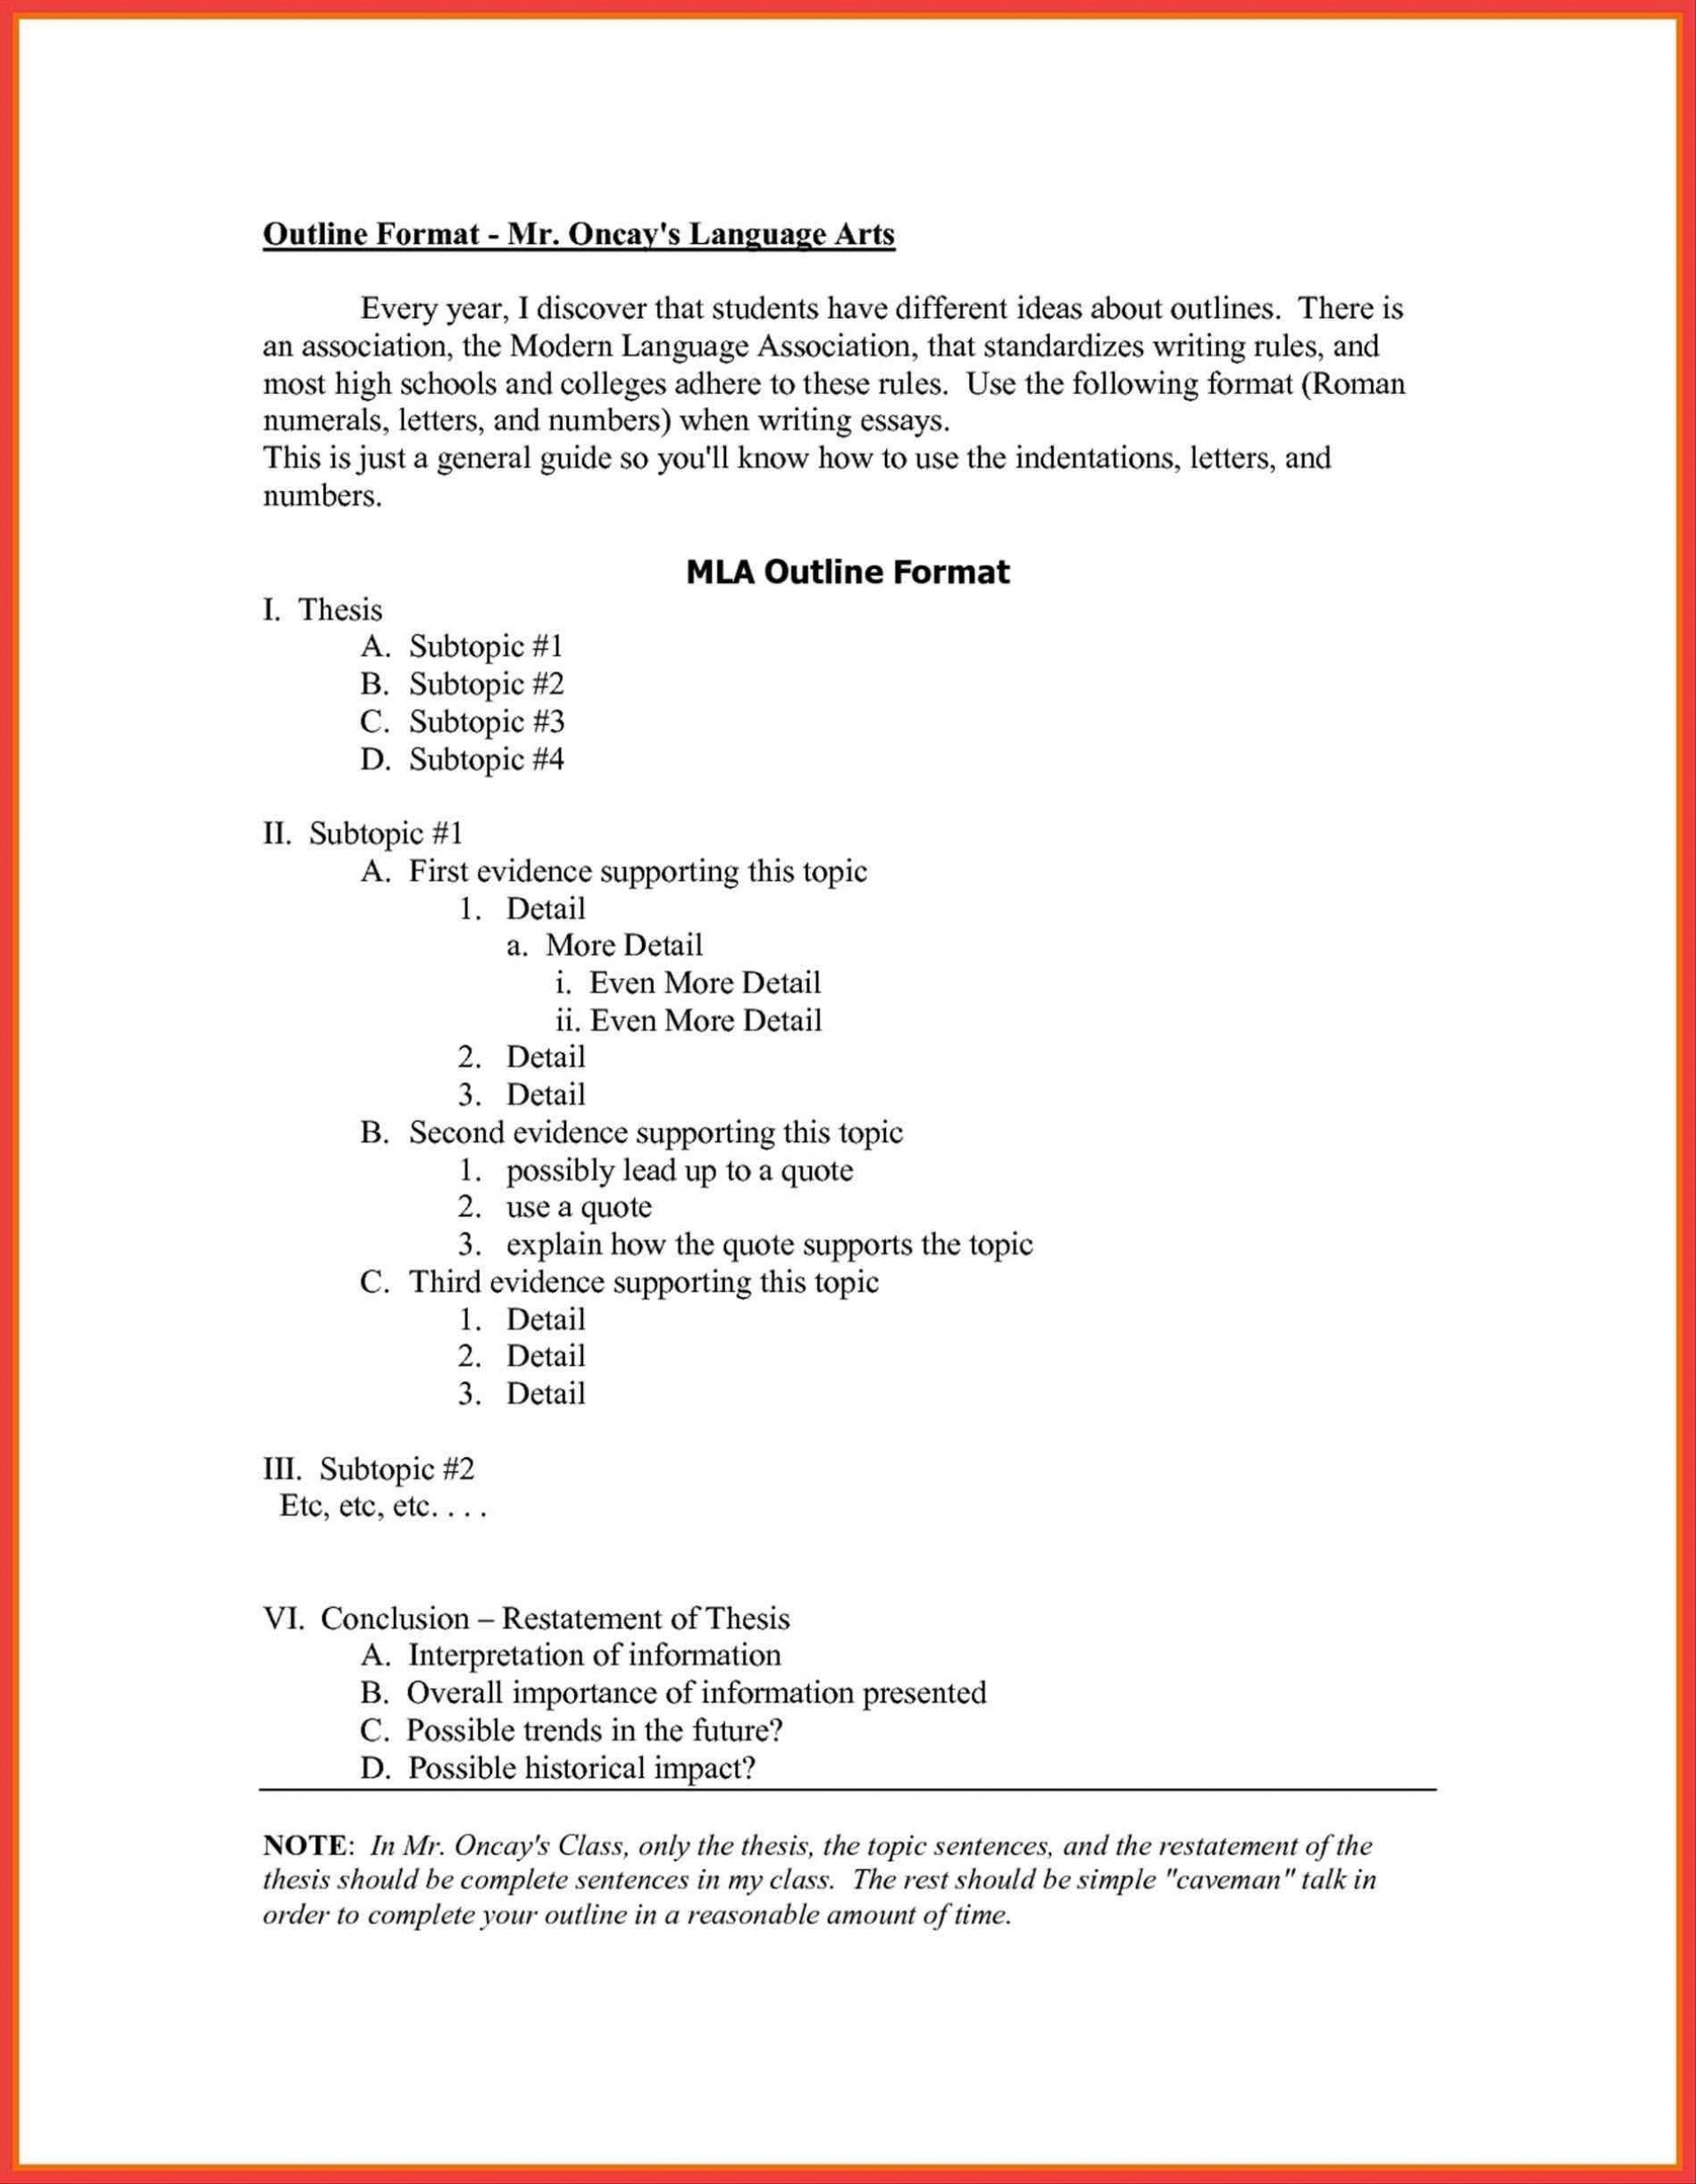 007 Research Paper College Outline Format Style Template Of Apa Inside History Essay Stunning 1920